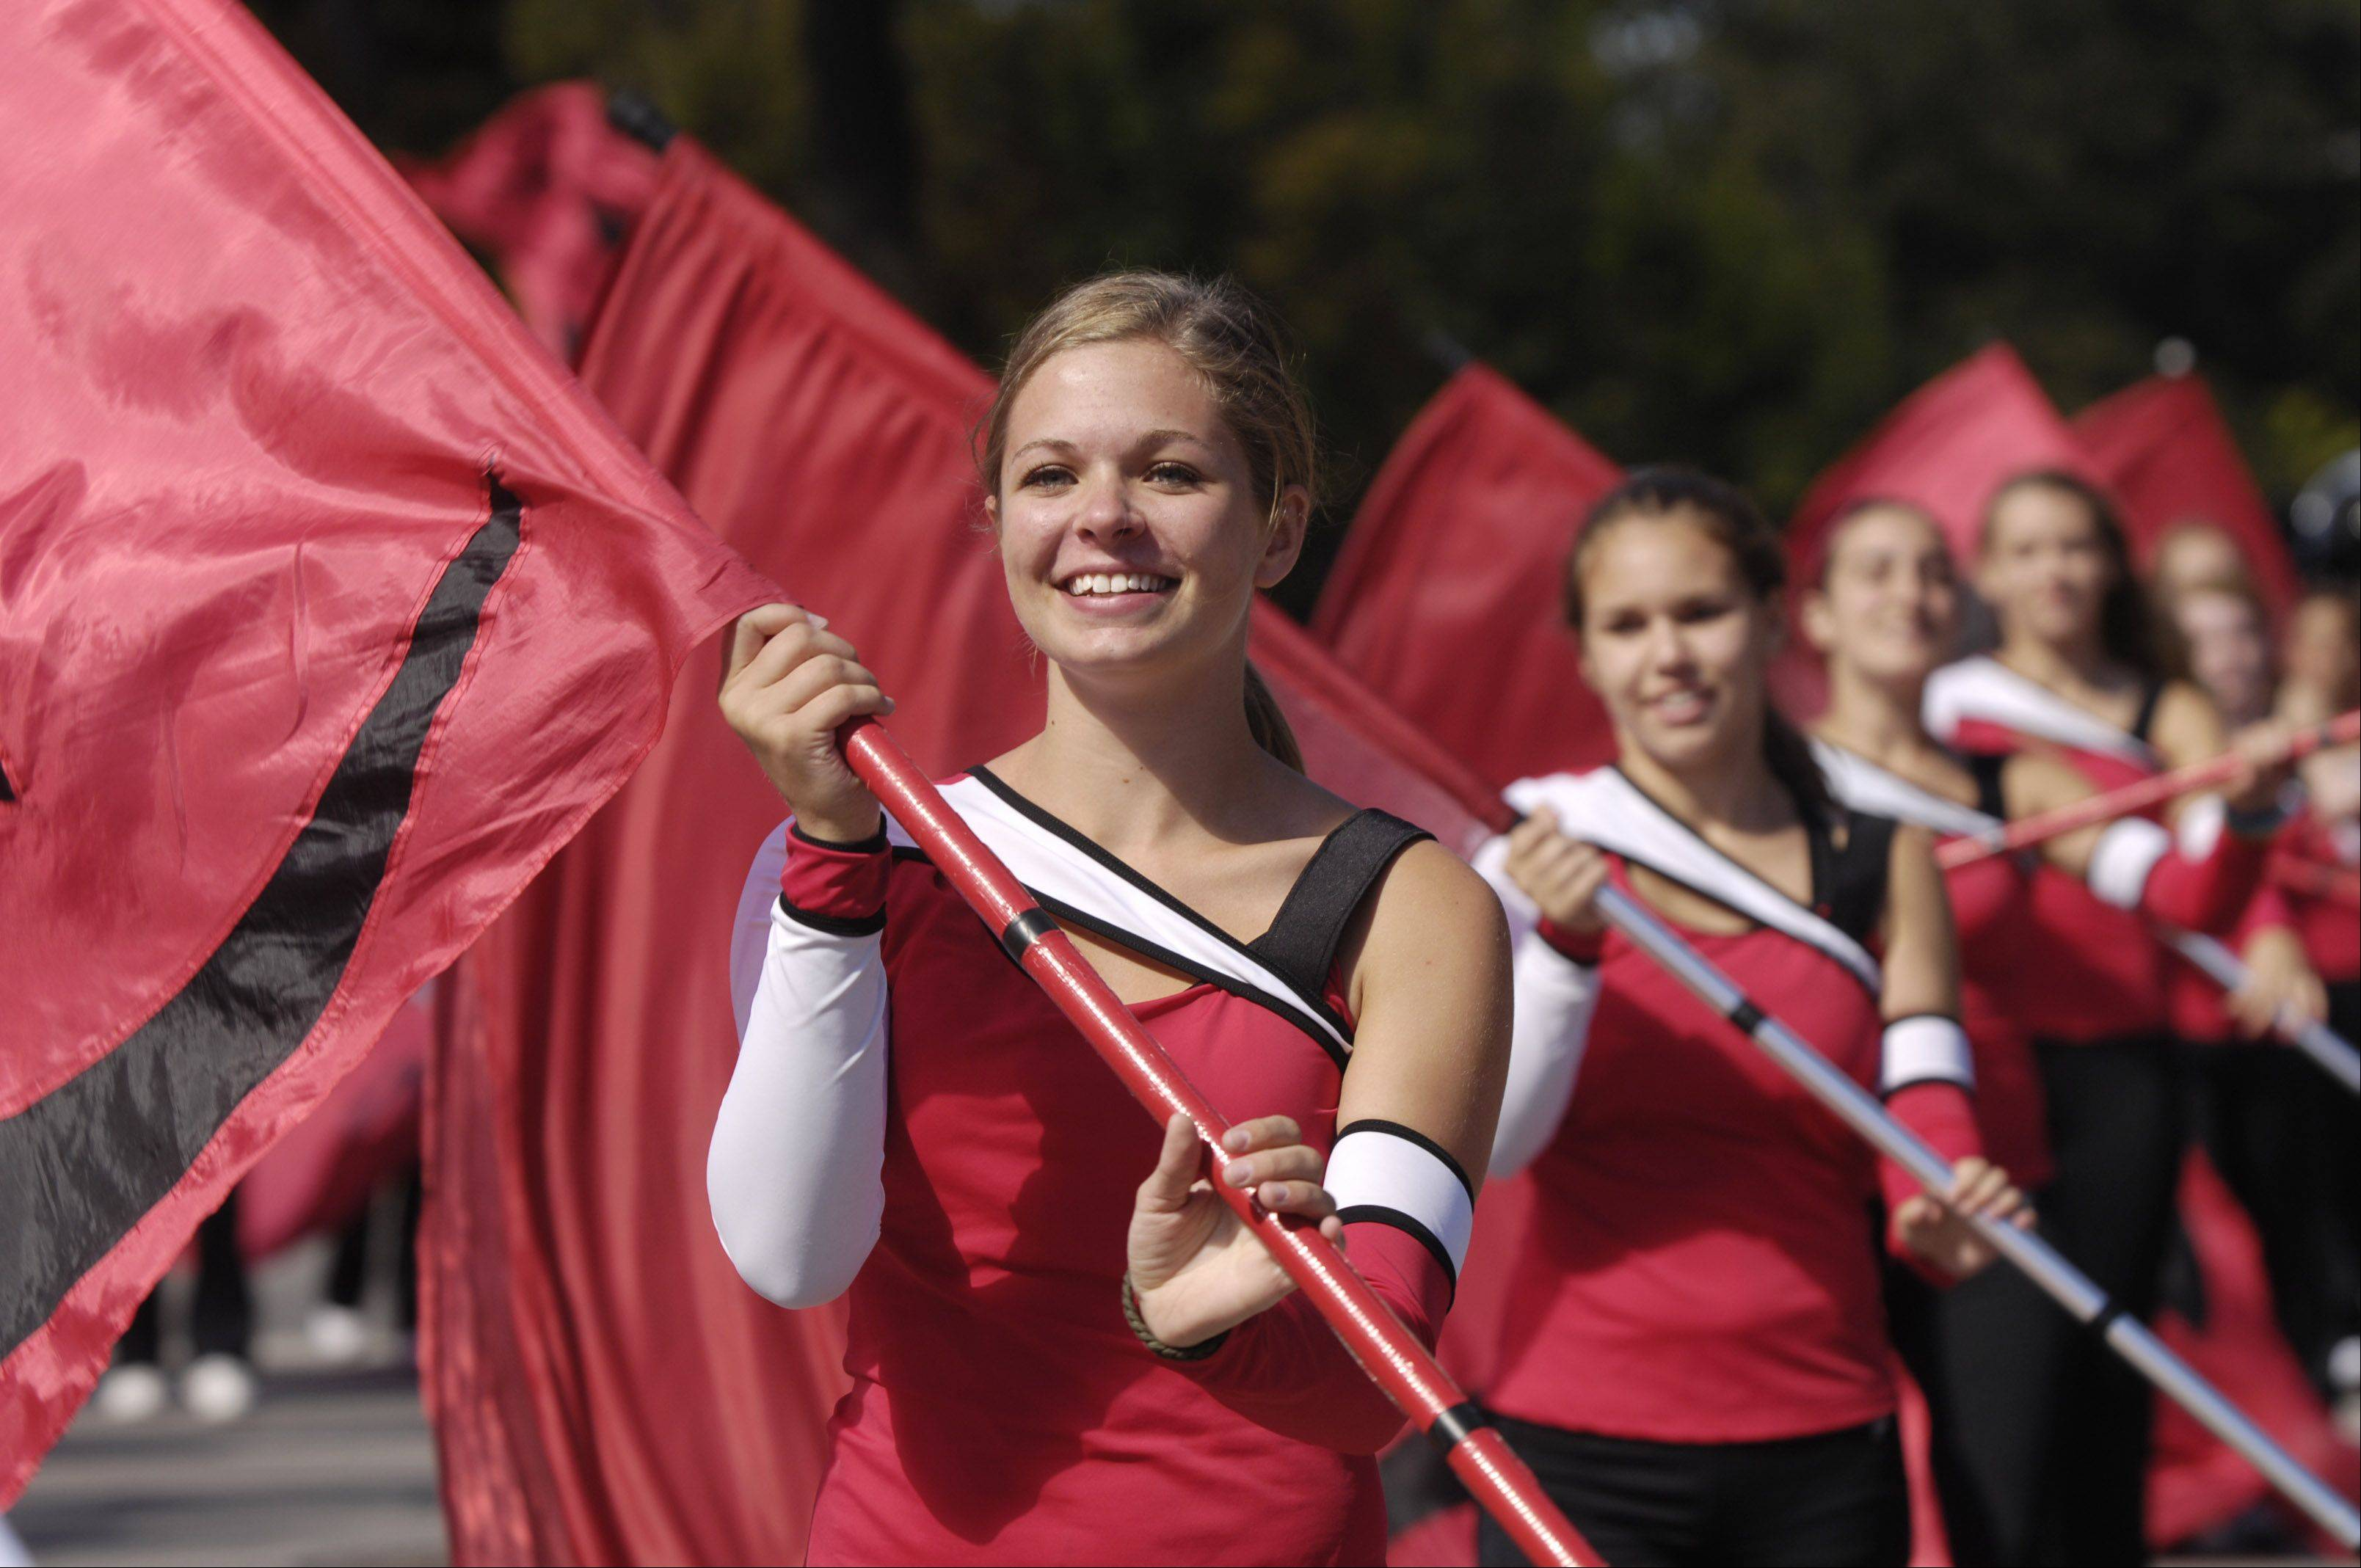 The Naperville Central High School flag choir performs during the Last Fling Labor Day parade.